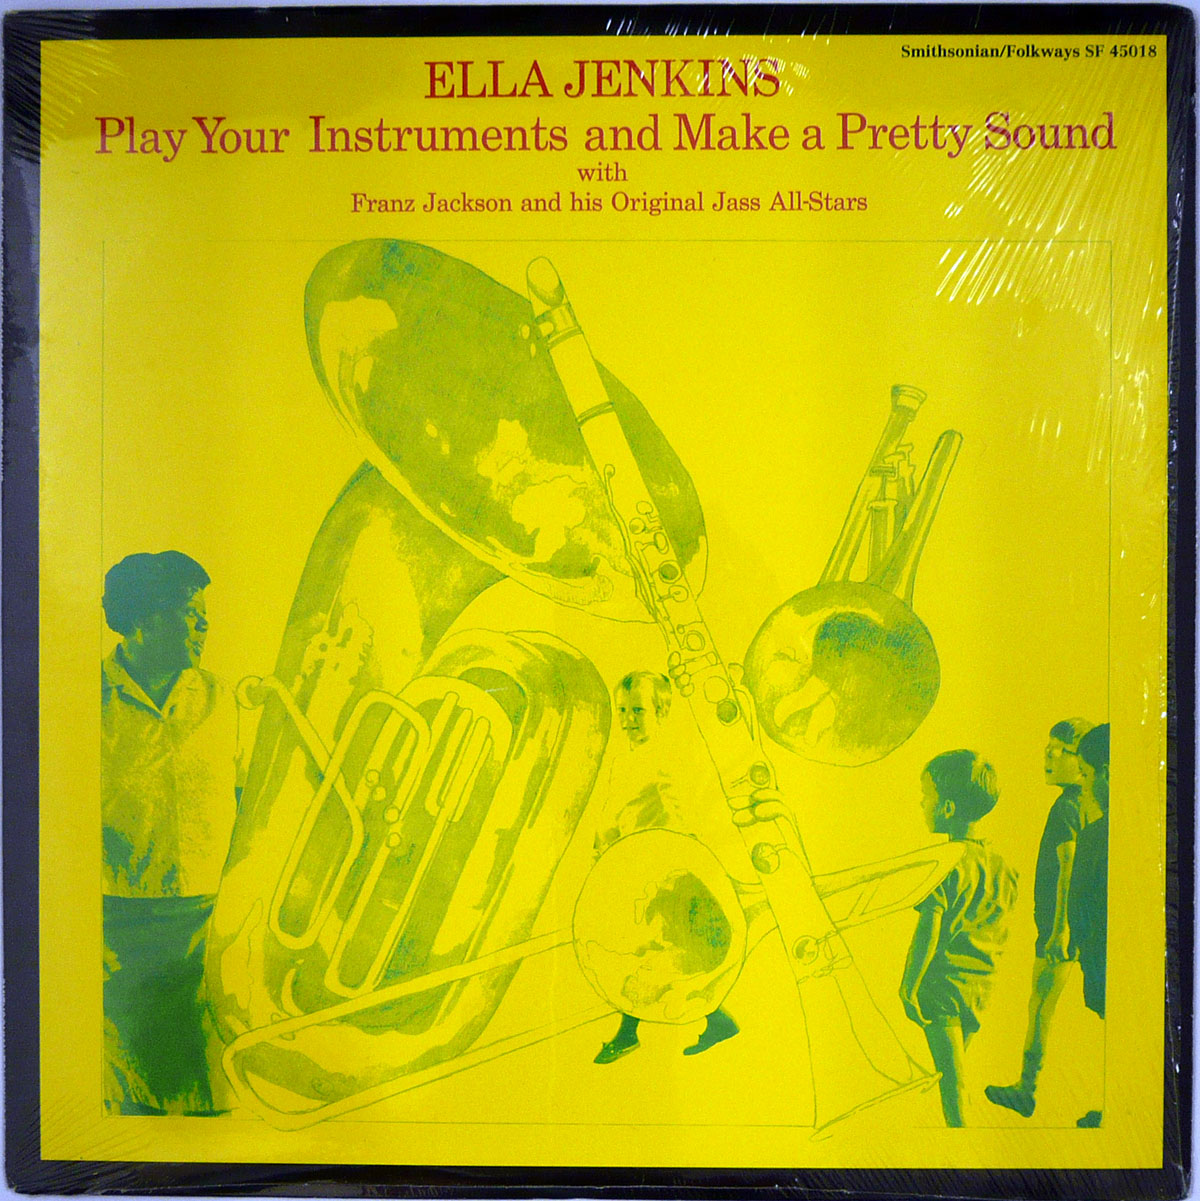 manual of errors sonota ella jenkins play your instruments and